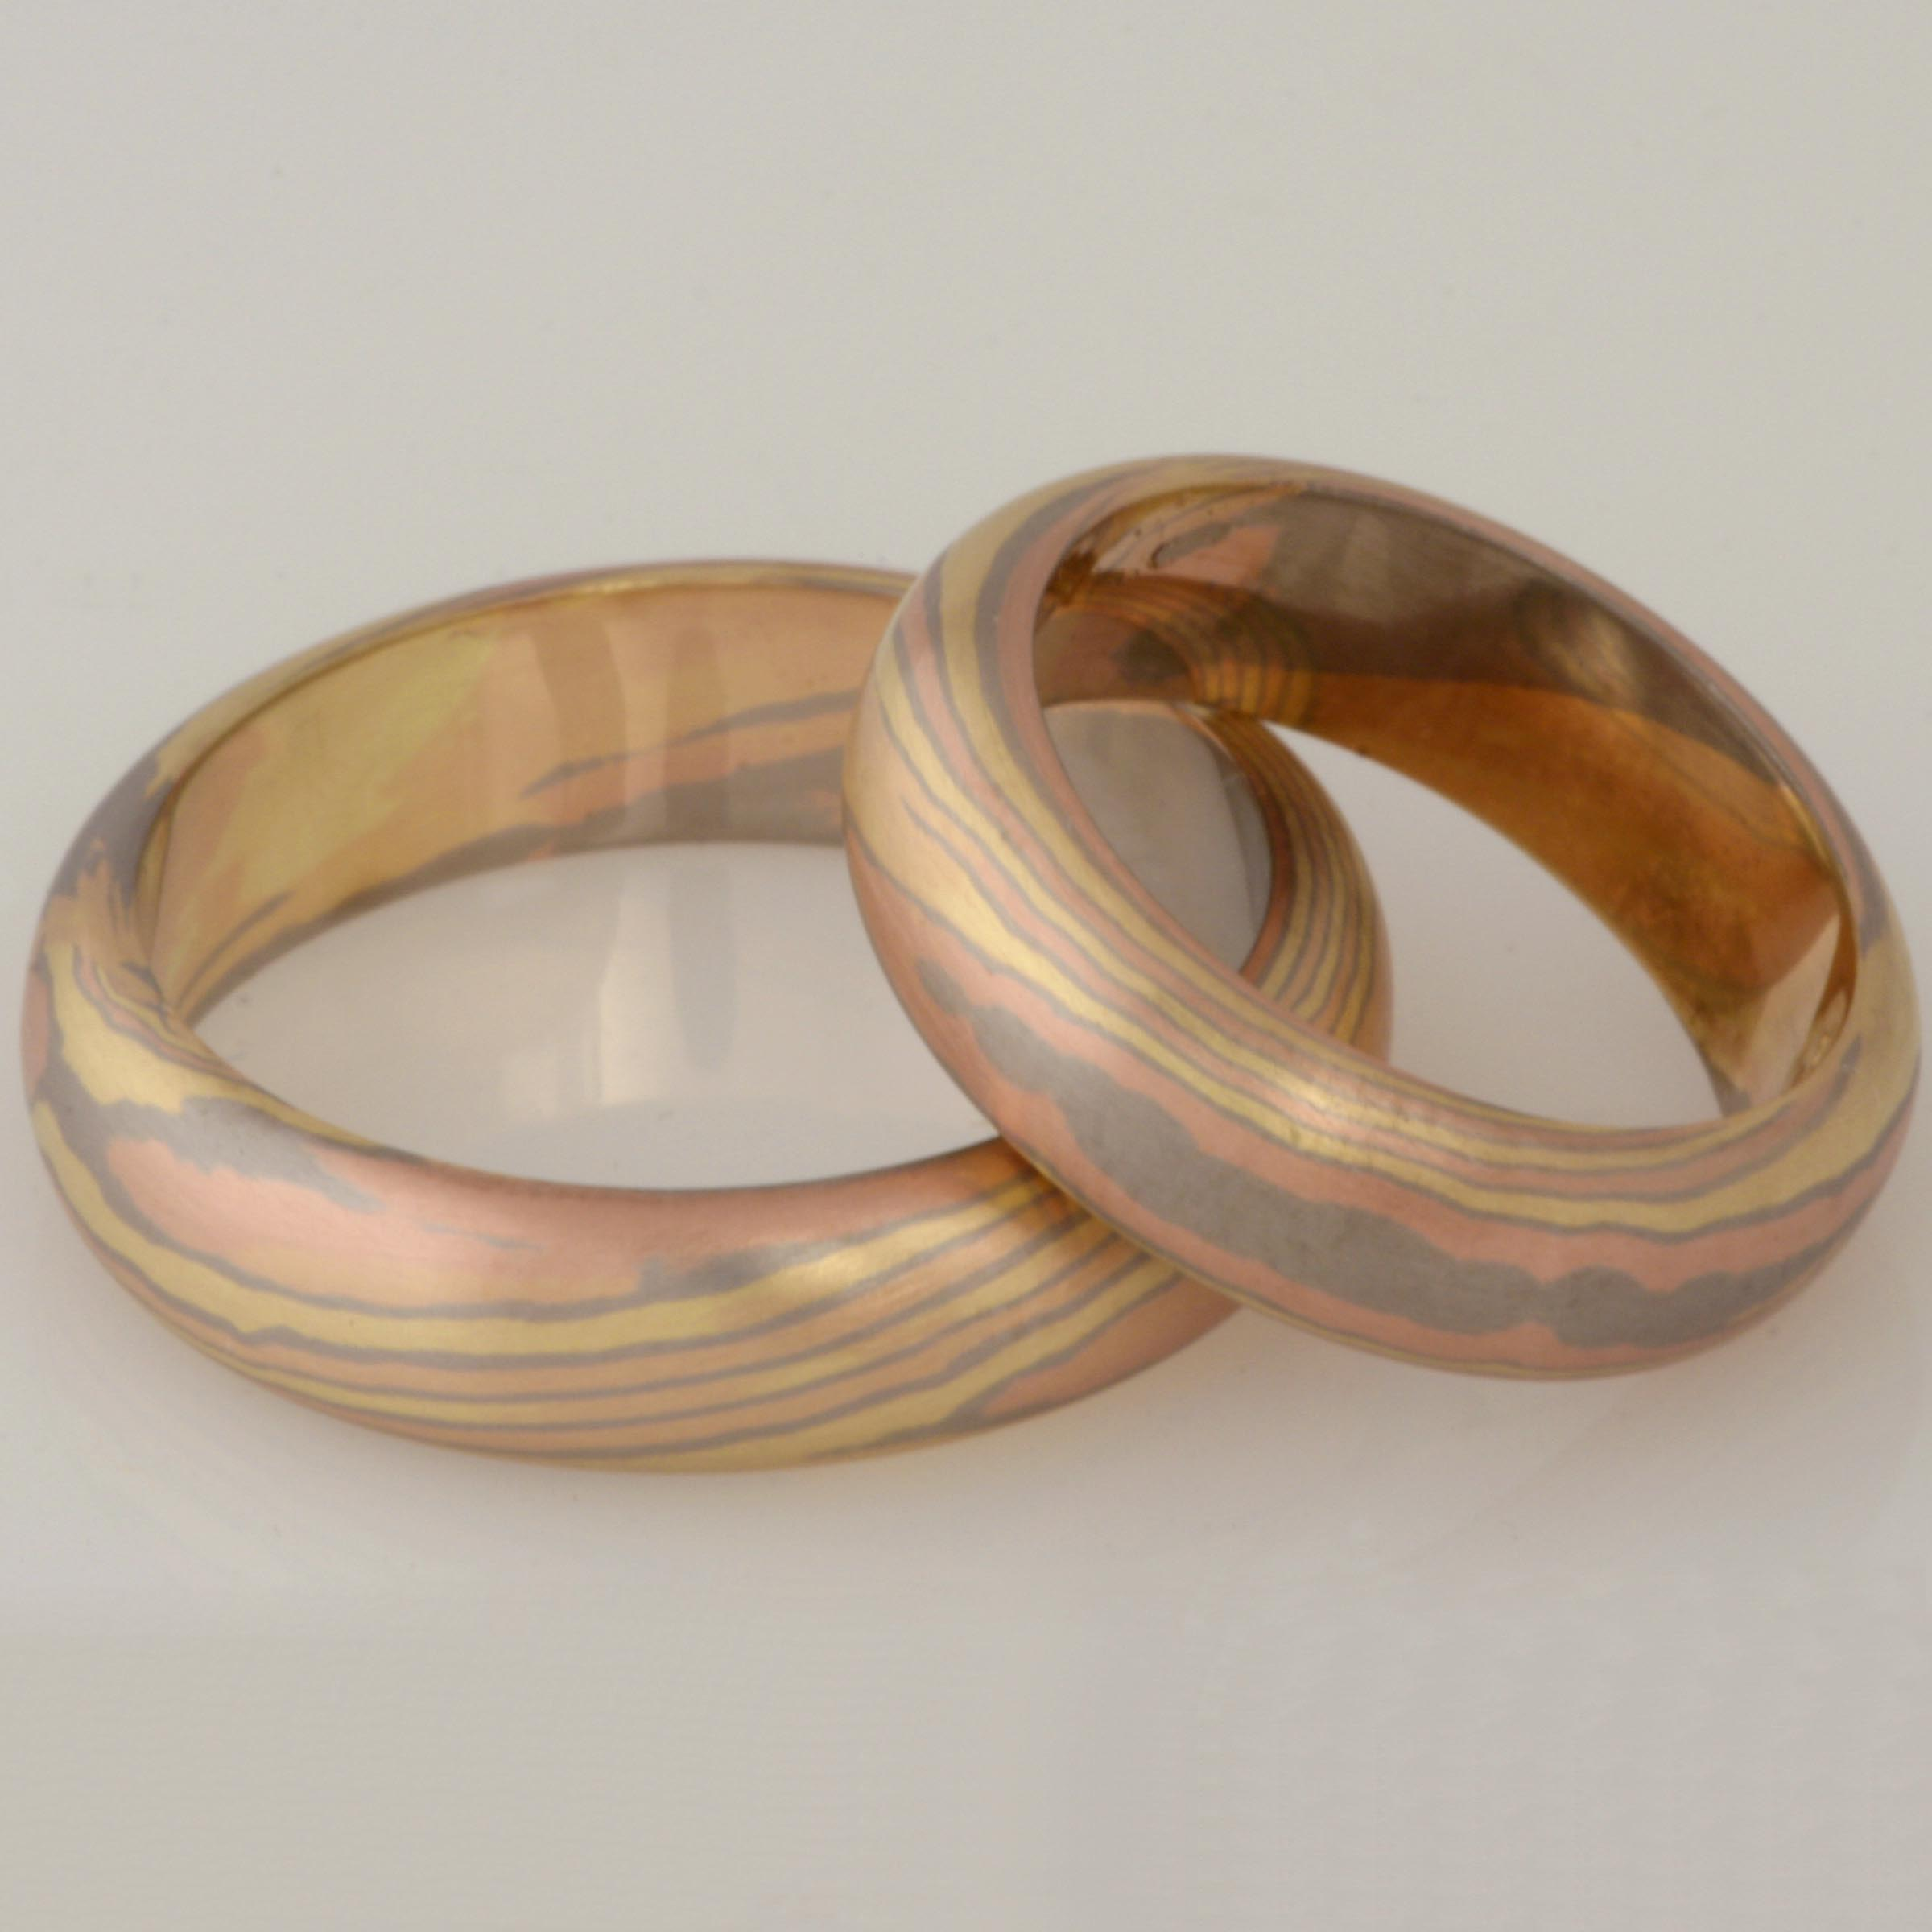 Handmade ladies and gents green, rose and white gold Mokume Gane wedding rings